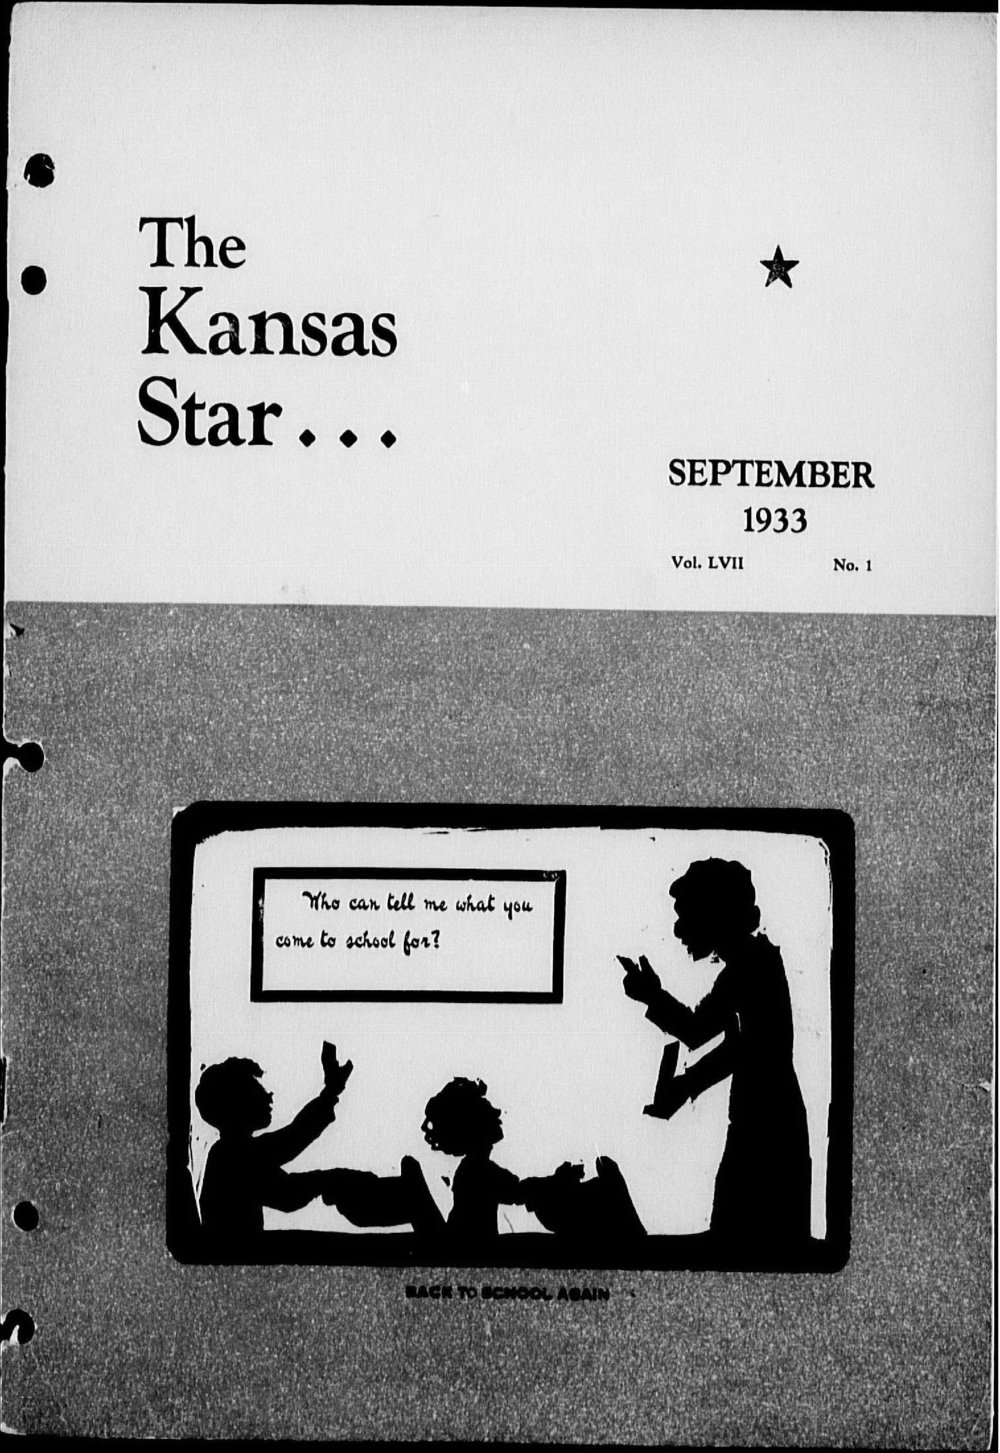 The Kansas Star, volume LVII, number 1 - Front cover